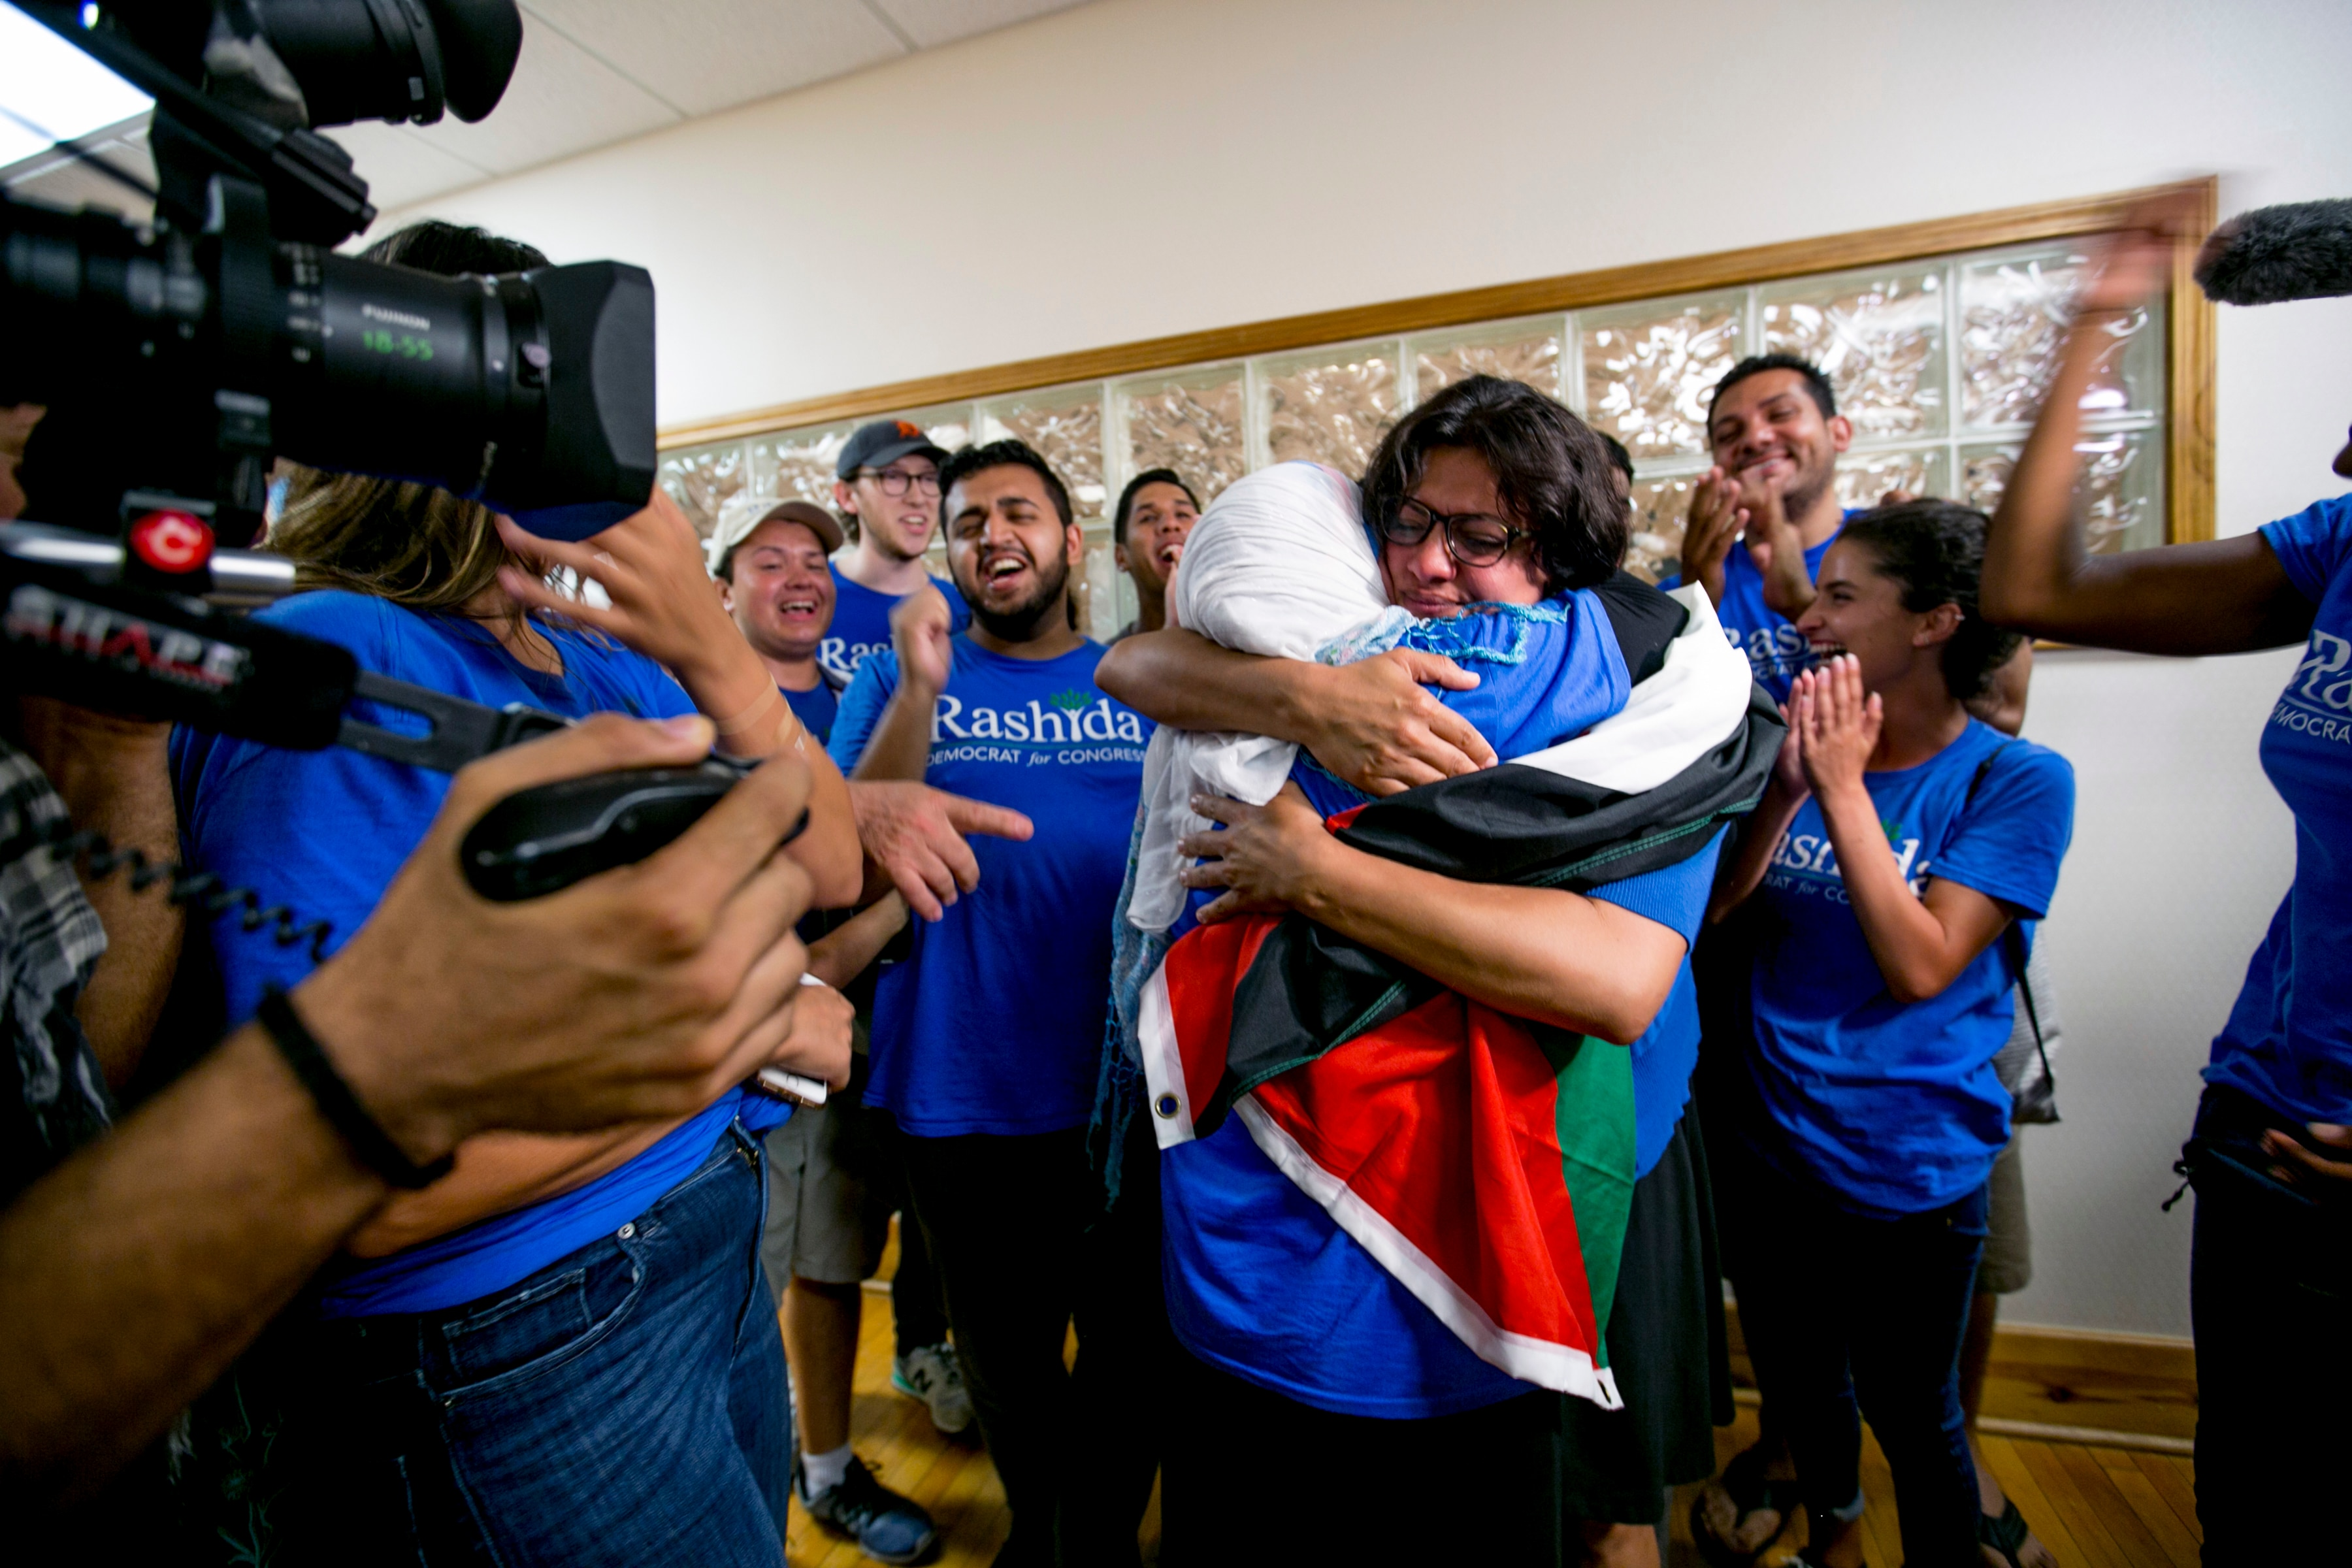 [Image Description: Rashida Tlaib draped in a Palestinian flag is embracing her mother on the night of her Primary Election win.]